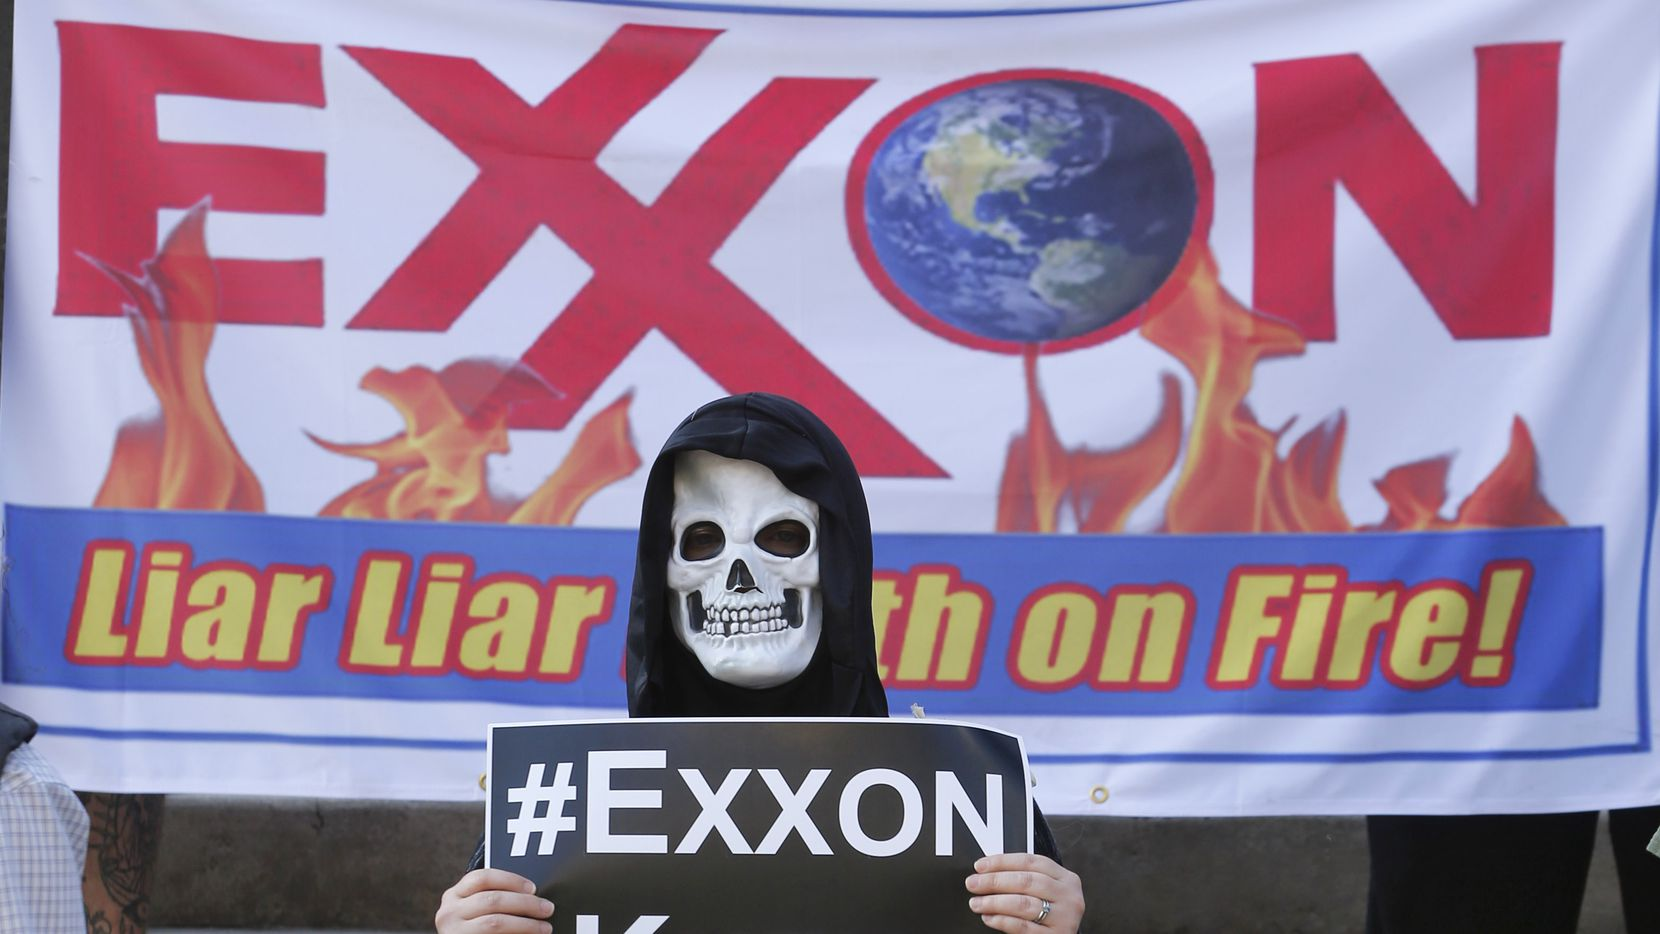 Shannon Carter wears a skeleton mask while dressed as an oil rig as protesters gather outside of the Exxon shareholders meeting across the street from Morton H. Meyerson Symphony Center in Dallas on May 31, 2017.  (Nathan Hunsinger/The Dallas Morning News)